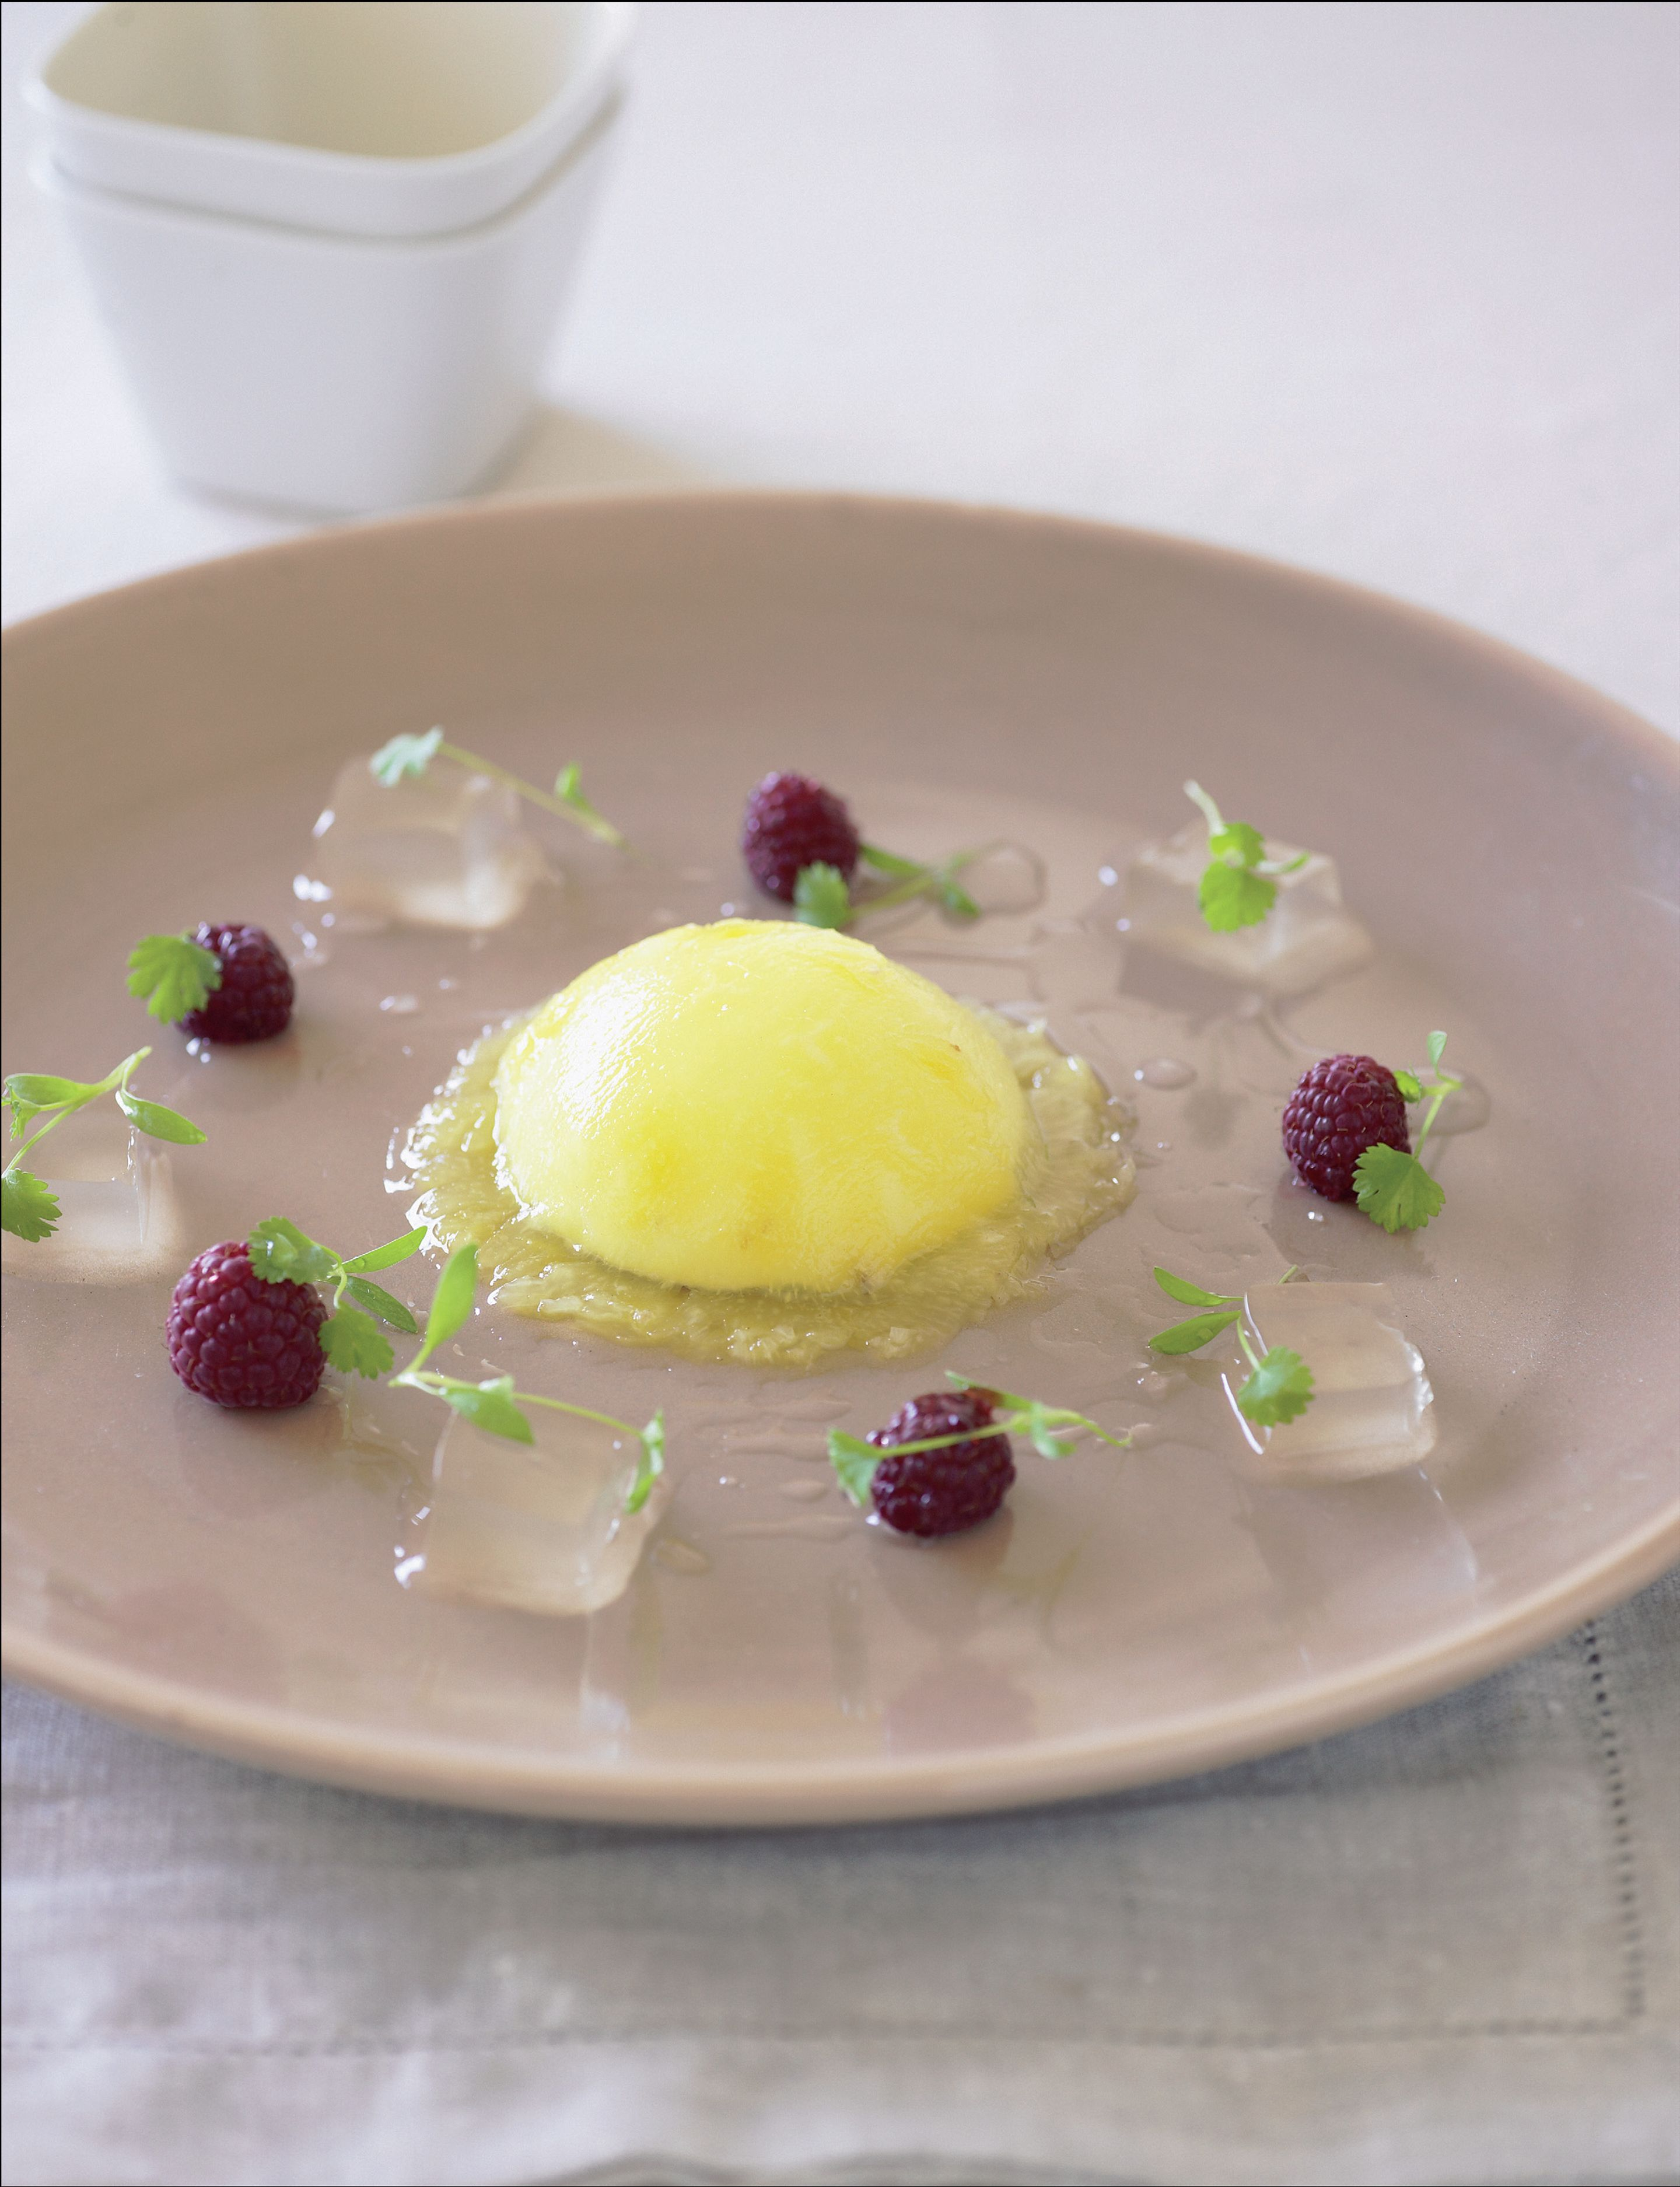 Raviolo of pineapple